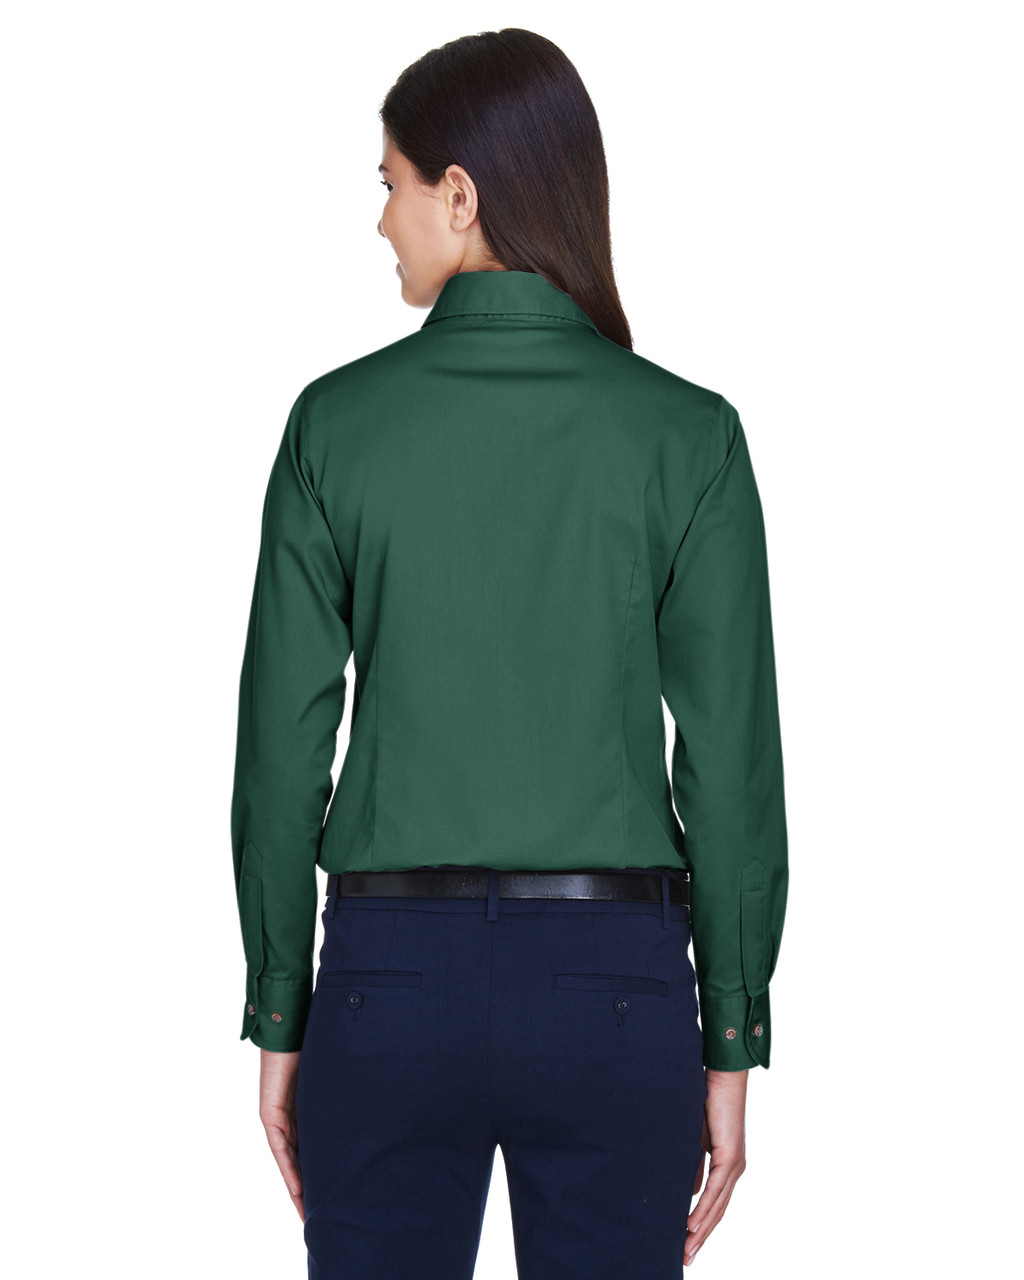 Hunter - Back, M500W Harriton Easy Blend Long-Sleeve Twill Shirt with Stain-Release | BlankClothing.ca